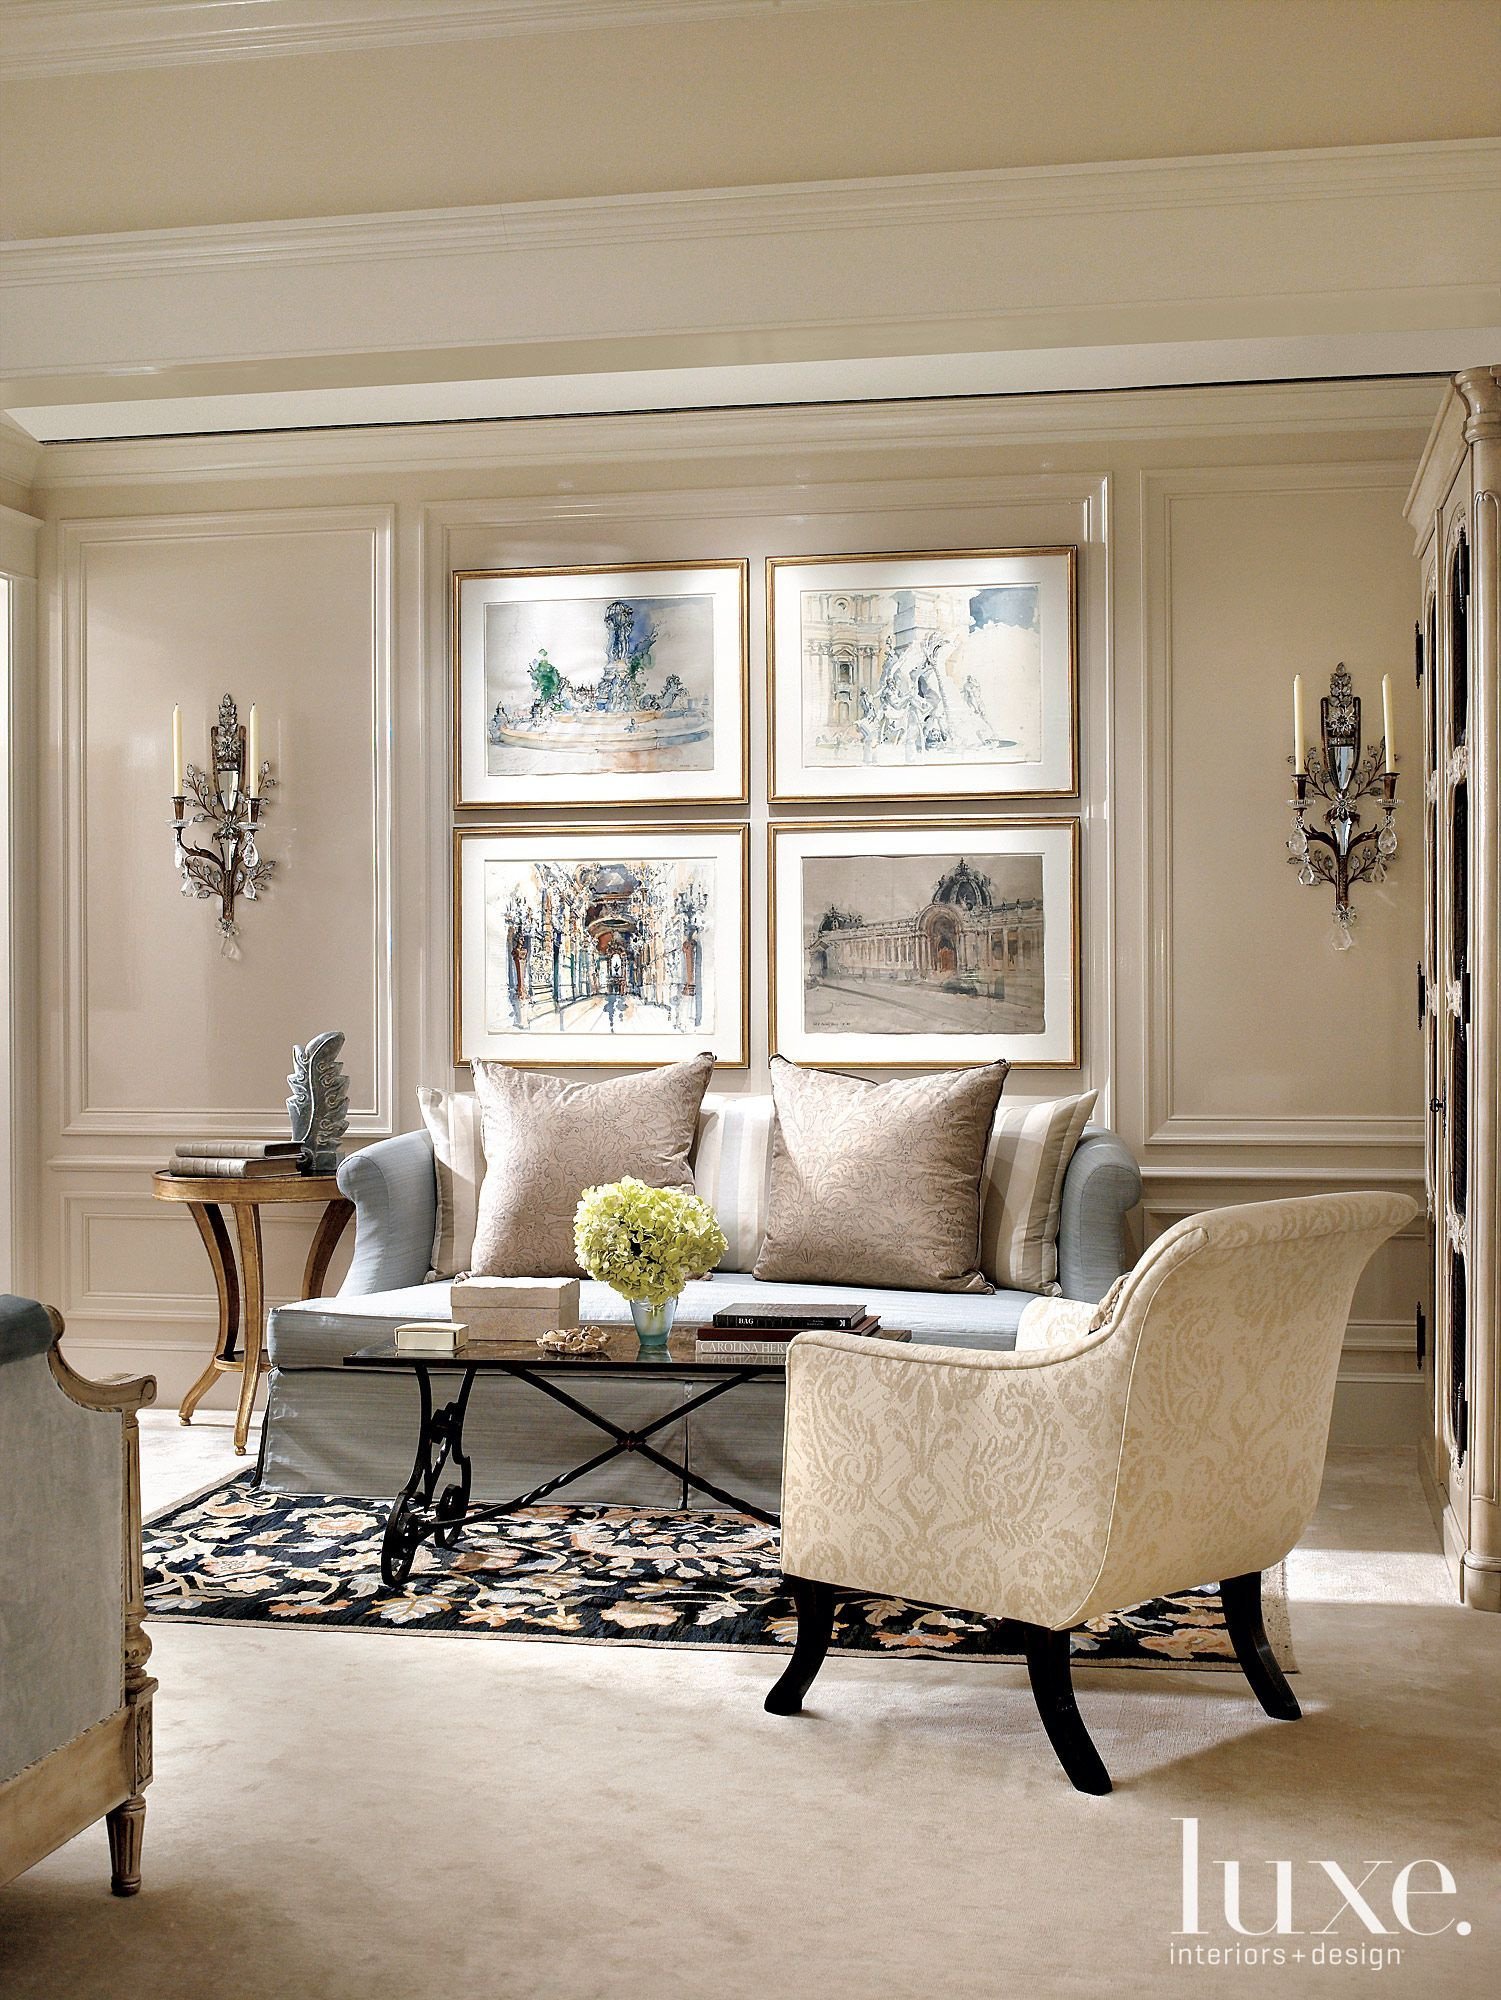 Rooms By Design Furniture Store: 30 Formal Living Room Design Ideas (Pictures) You Won't